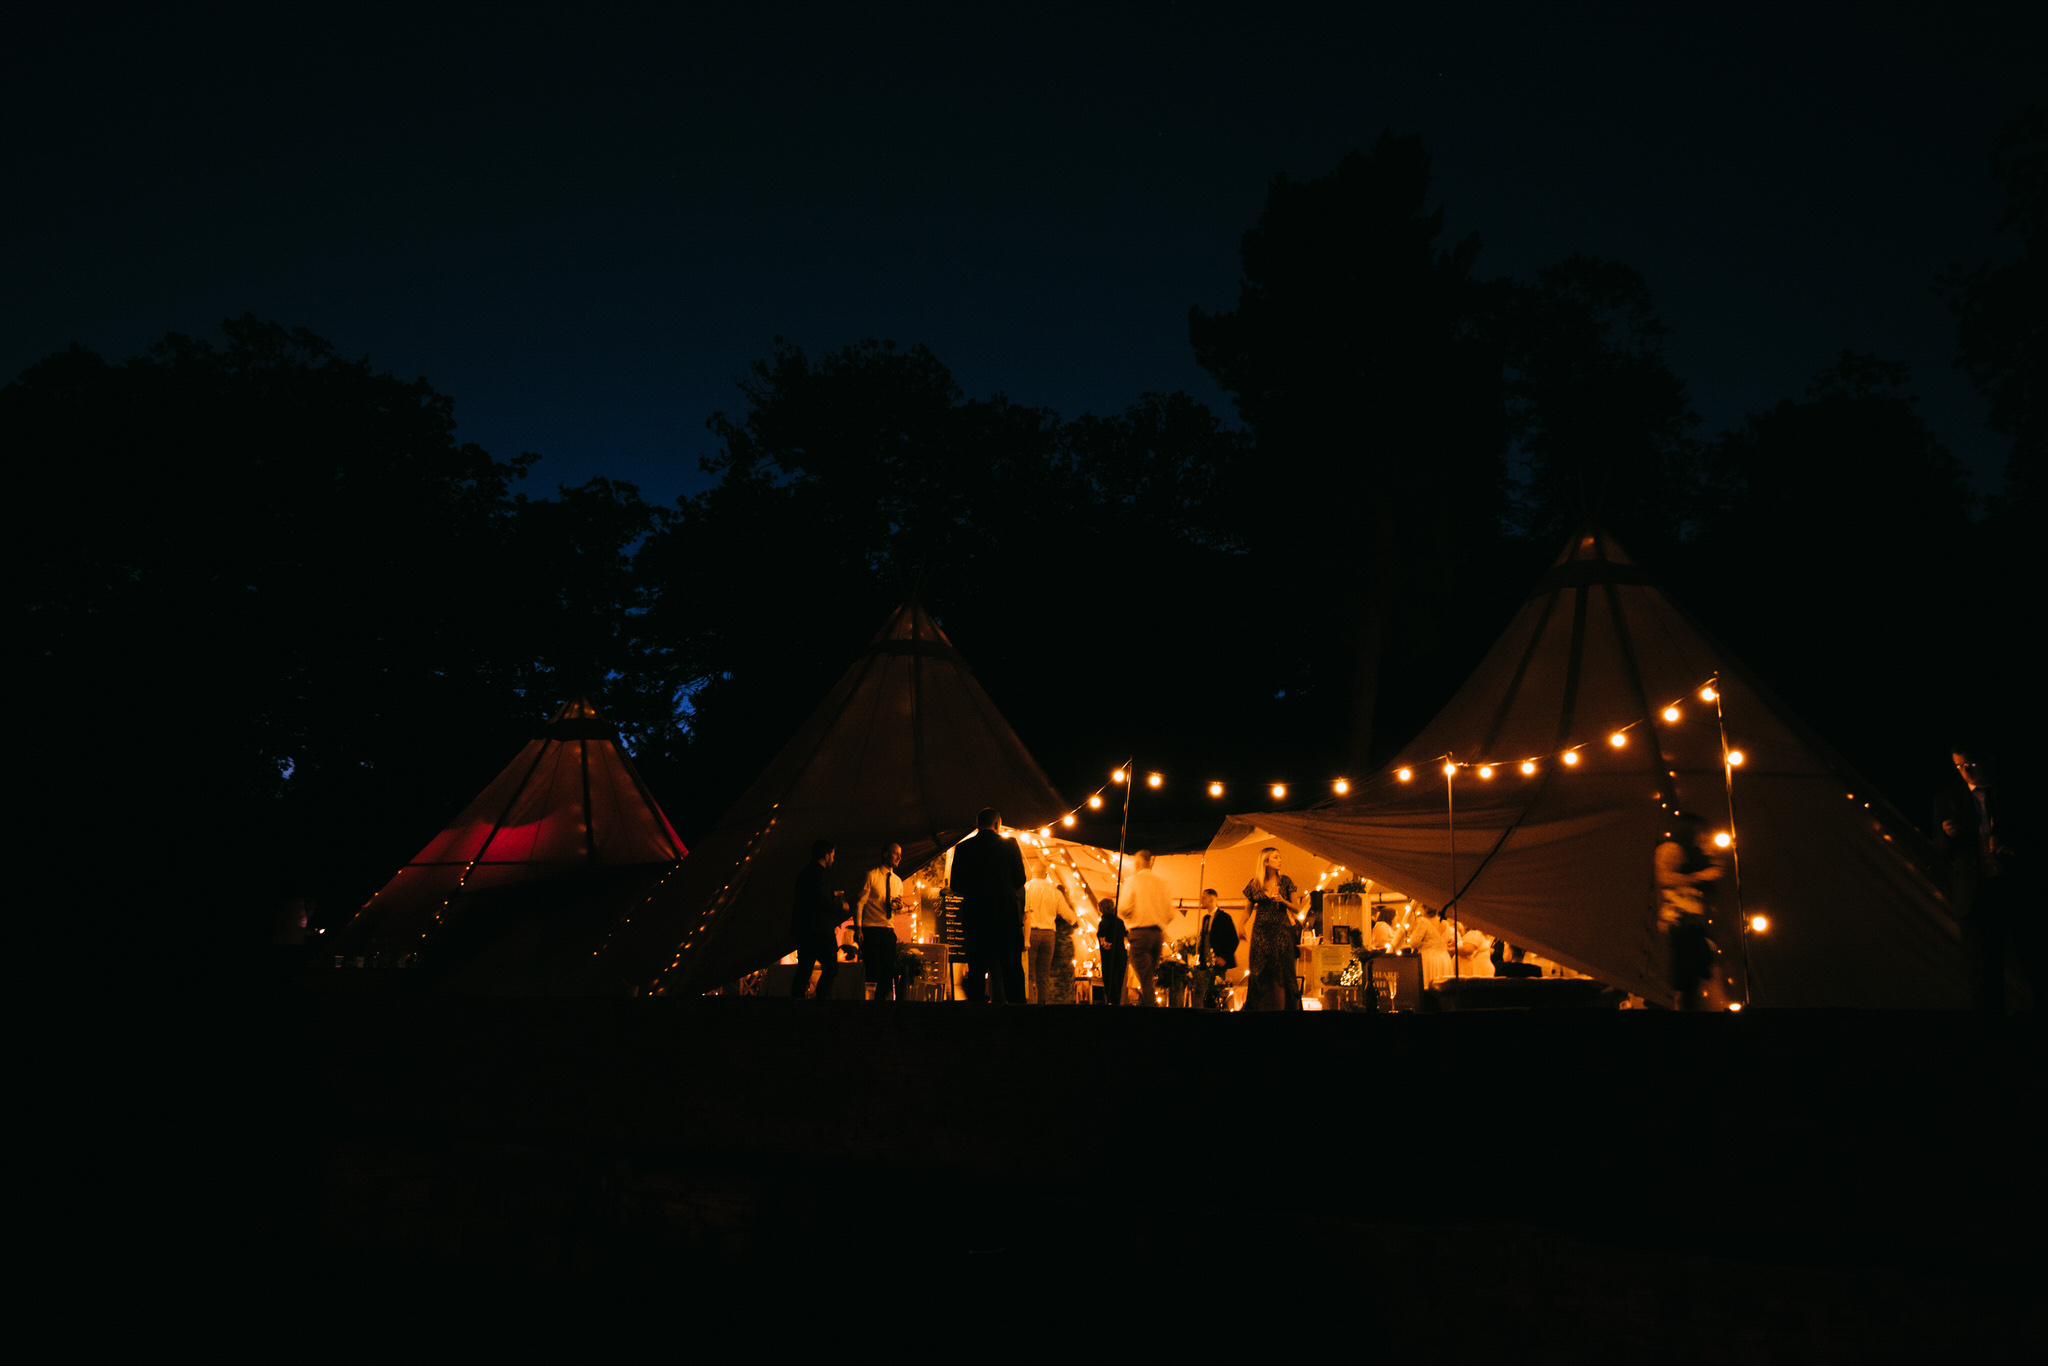 Cannon hall tipi at night